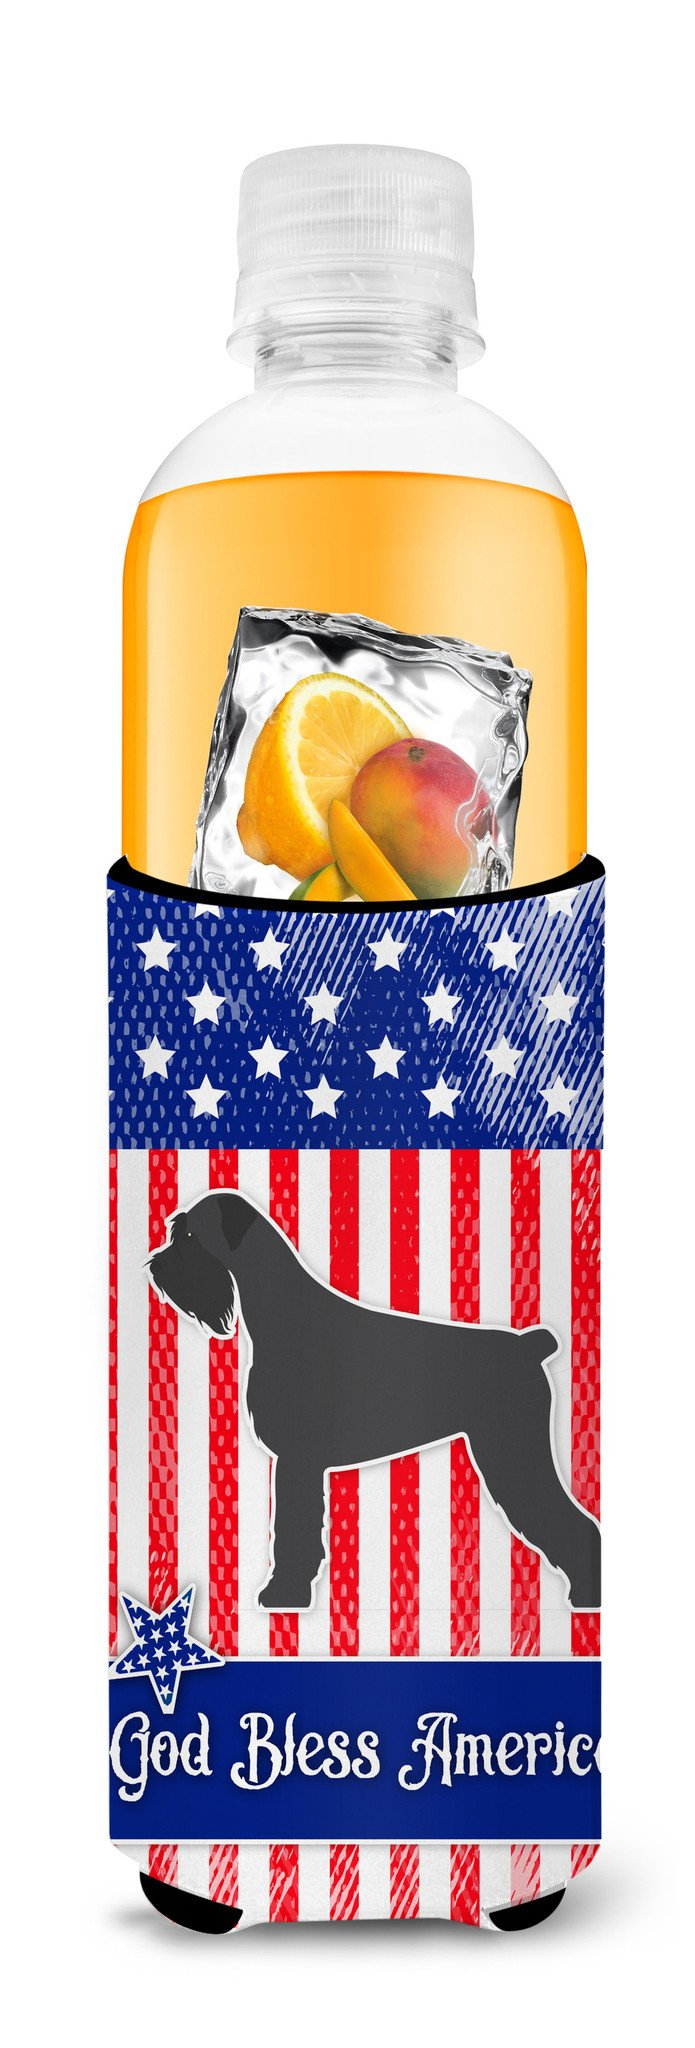 USA Patriotic Giant Schnauzer Michelob Ultra Hugger for slim cans BB3373MUK by Caroline's Treasures